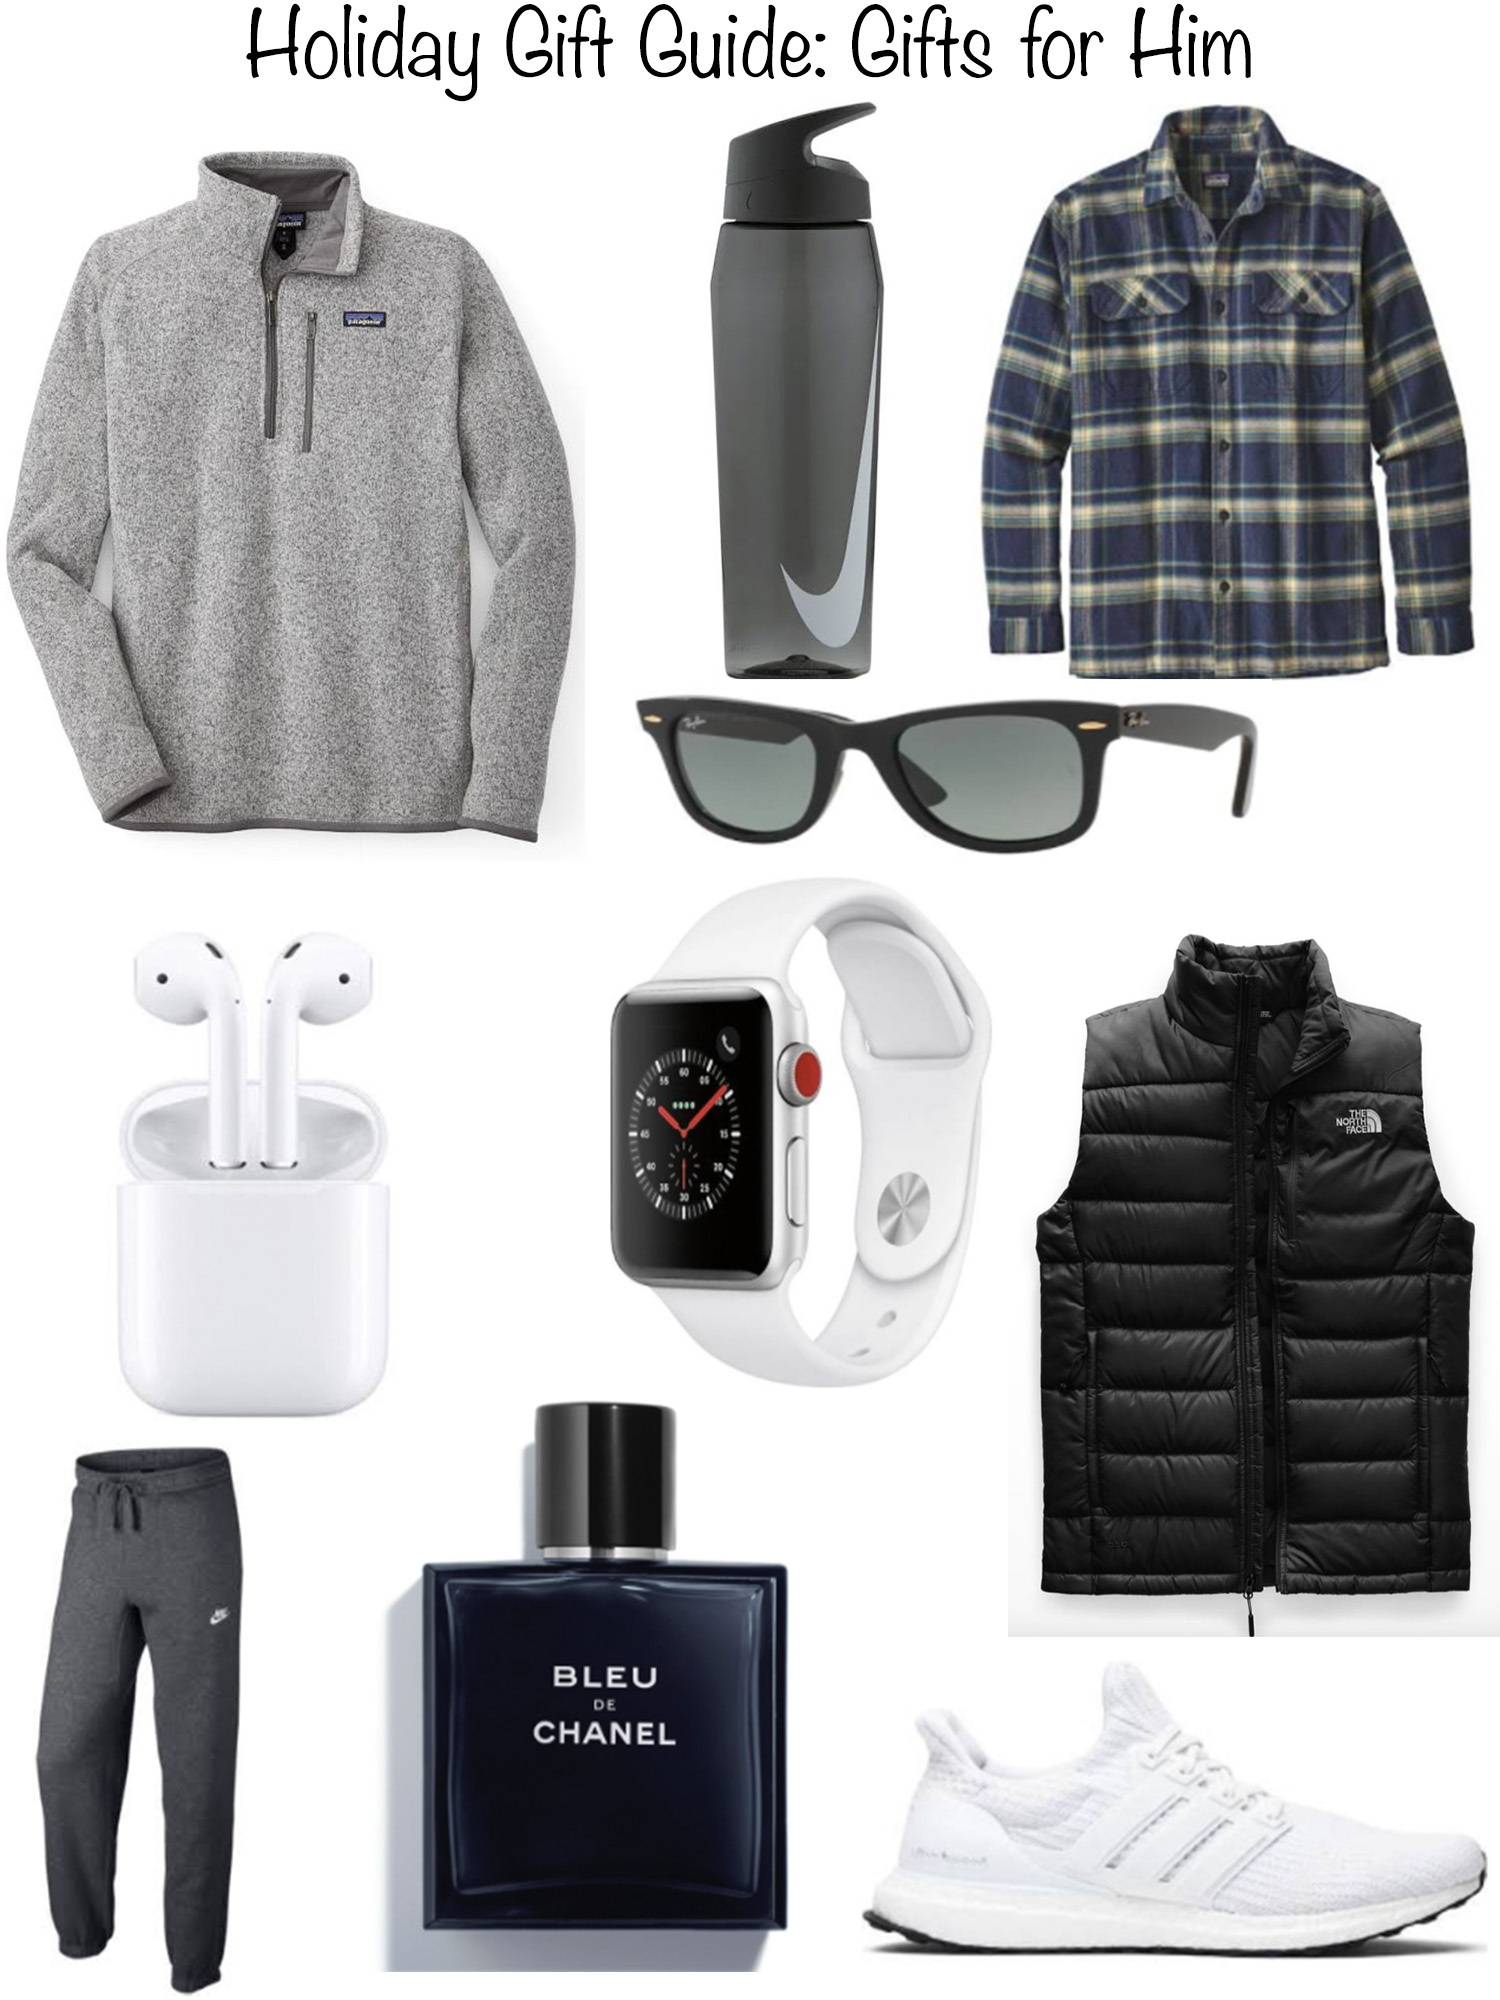 HolidayGiftGuide_GiftsForHim